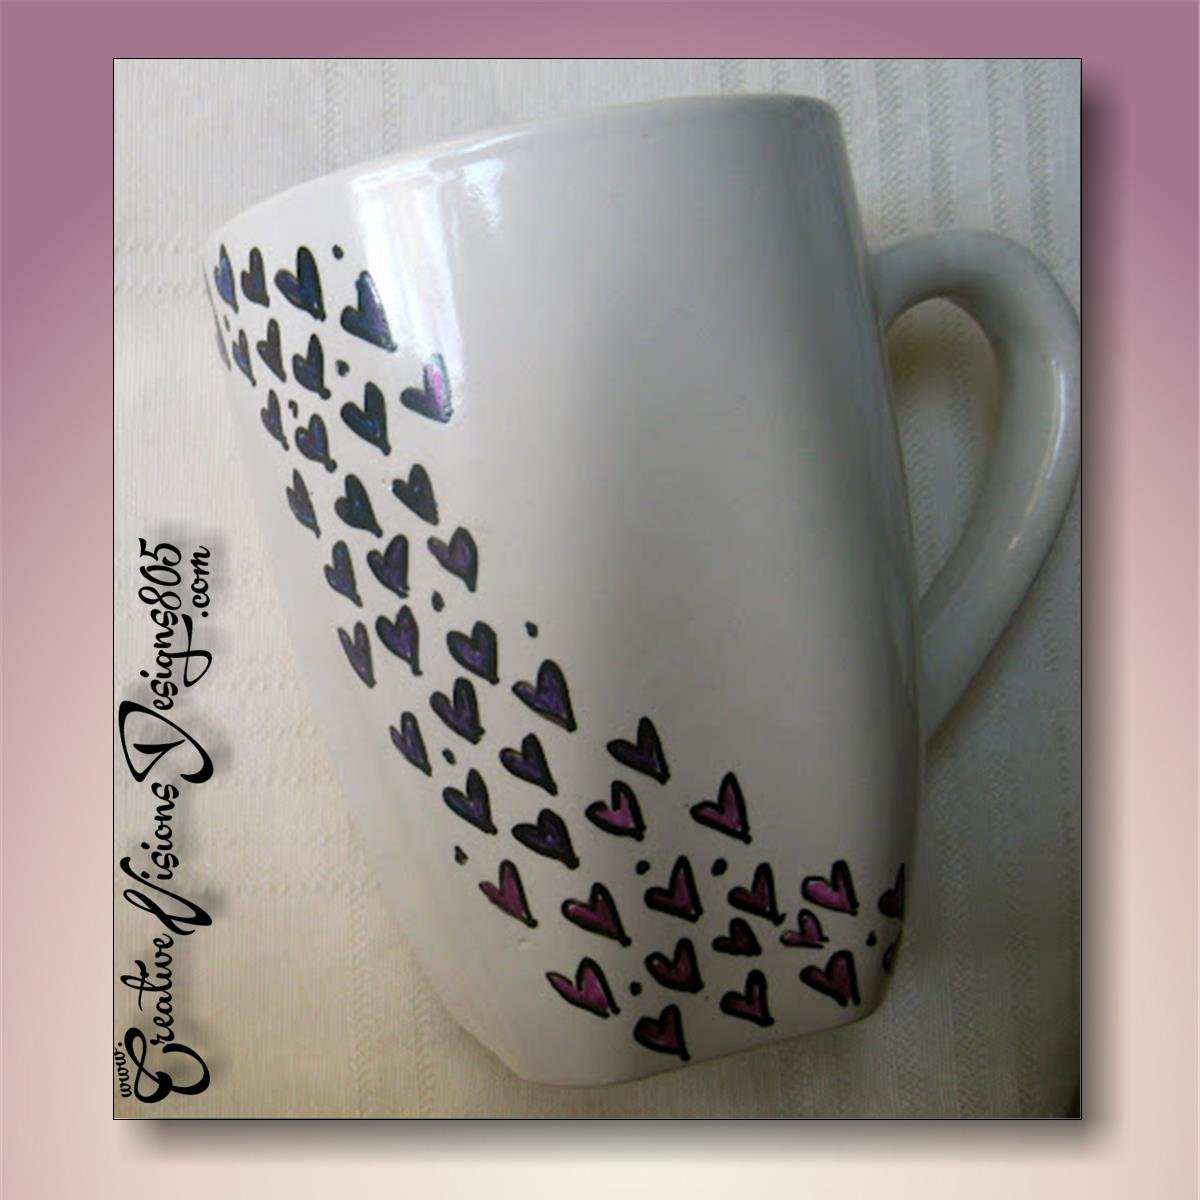 FOLLOW THE HEARTS - hand decorated coffee mug